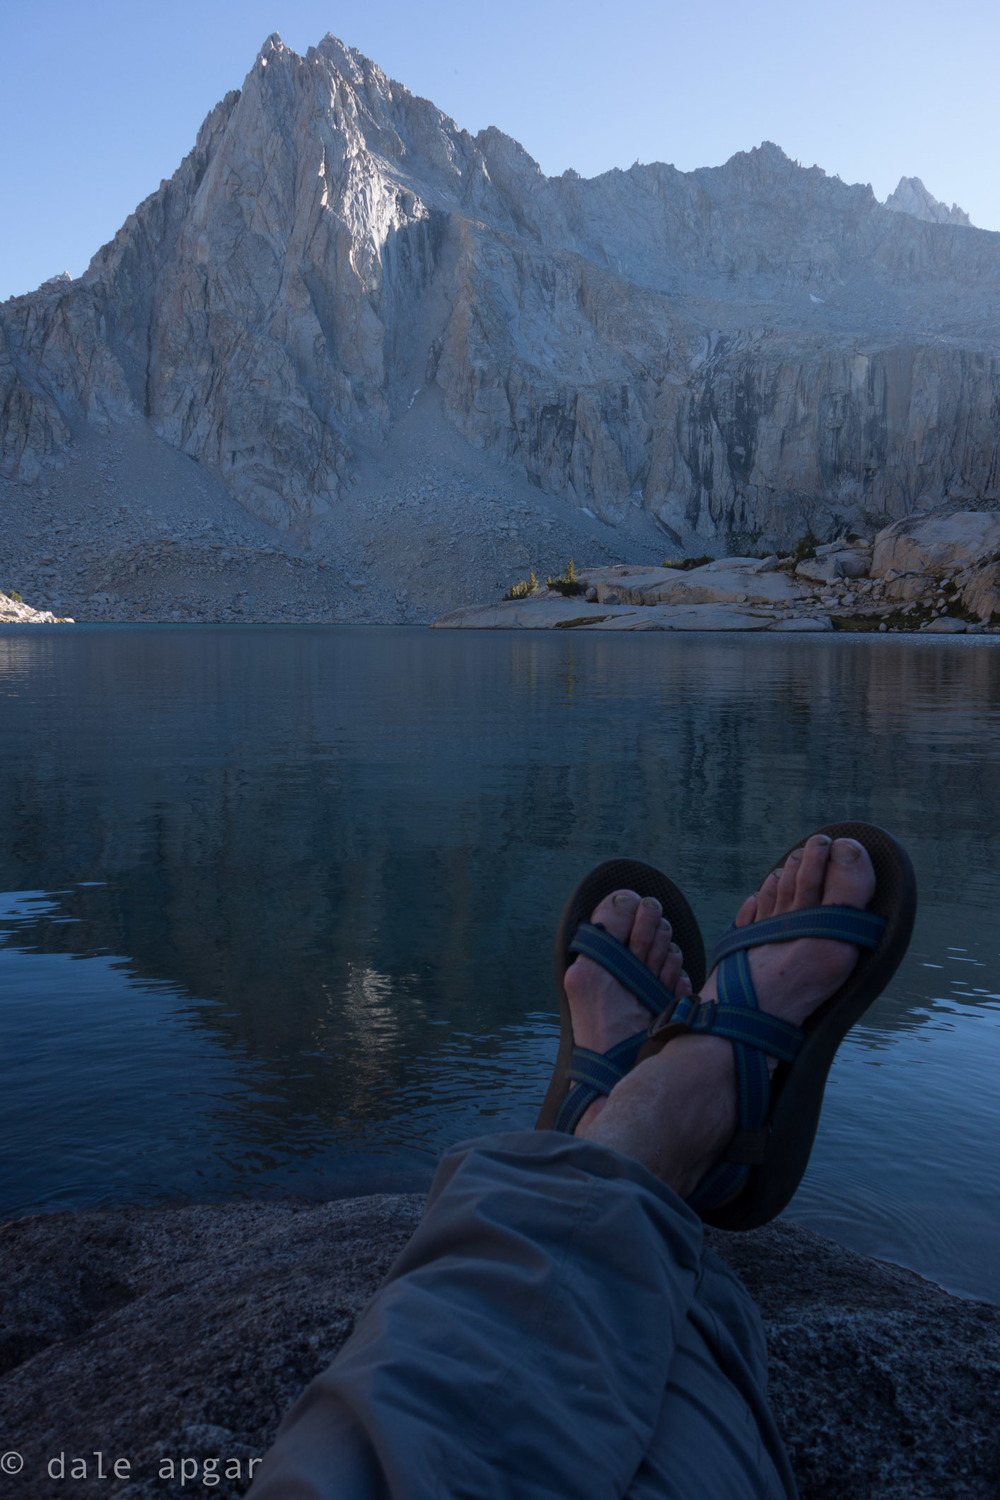 In case you're wondering, Hungry Packer Lake is stunning, and in the summer weather, chacos are perfectly suitable for approach